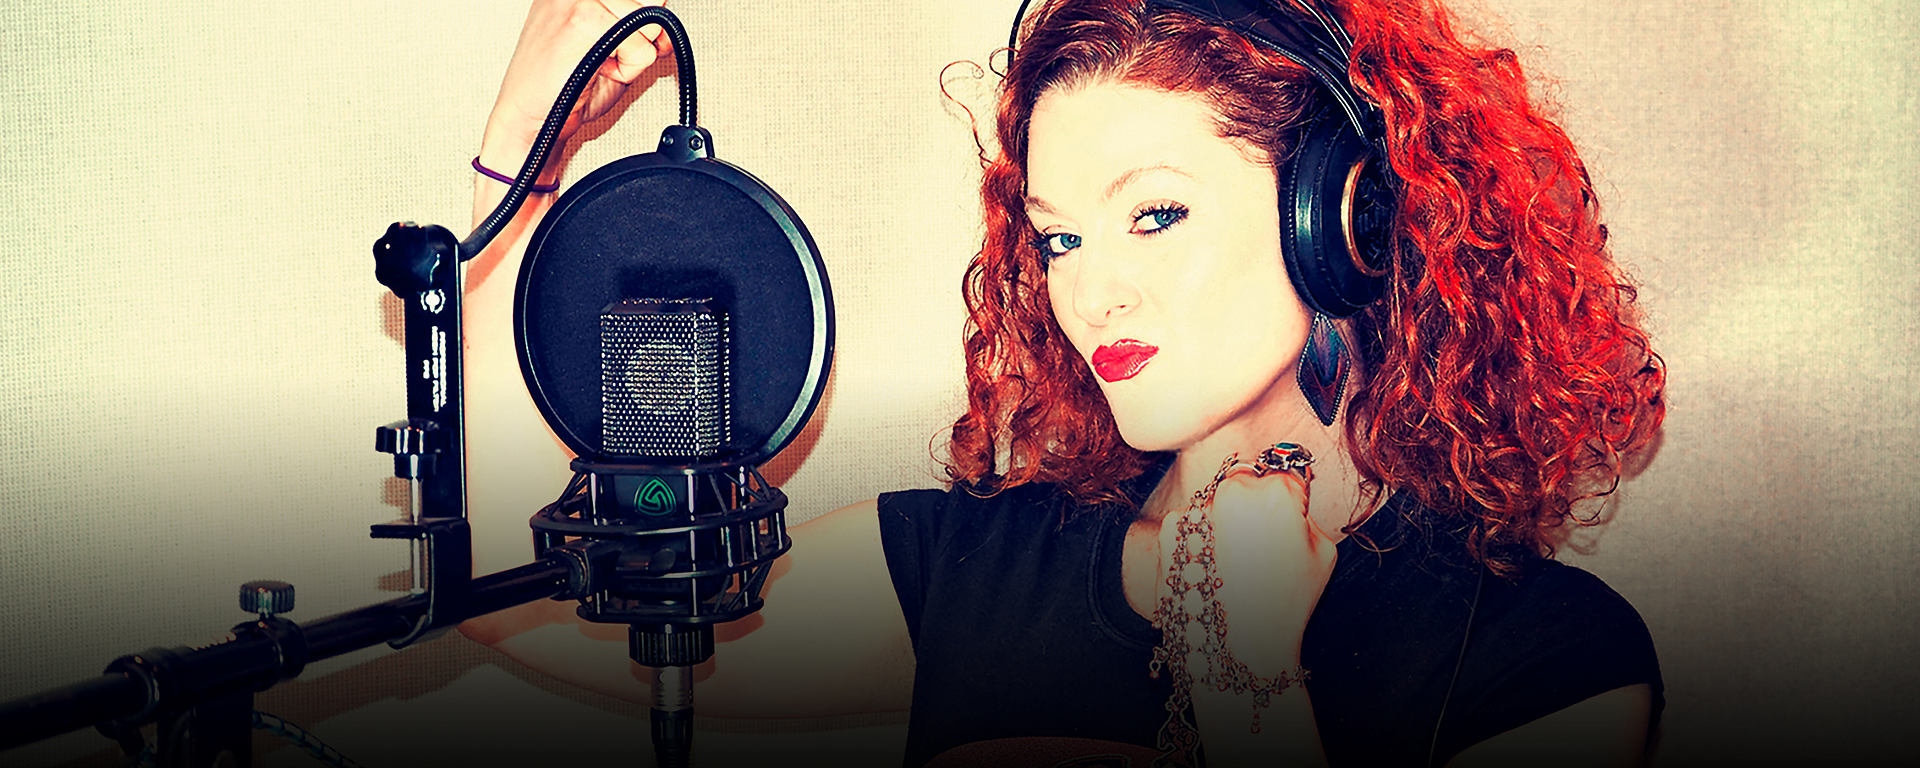 April Henry in studio with her LCT 550 reference condenser studio microphone